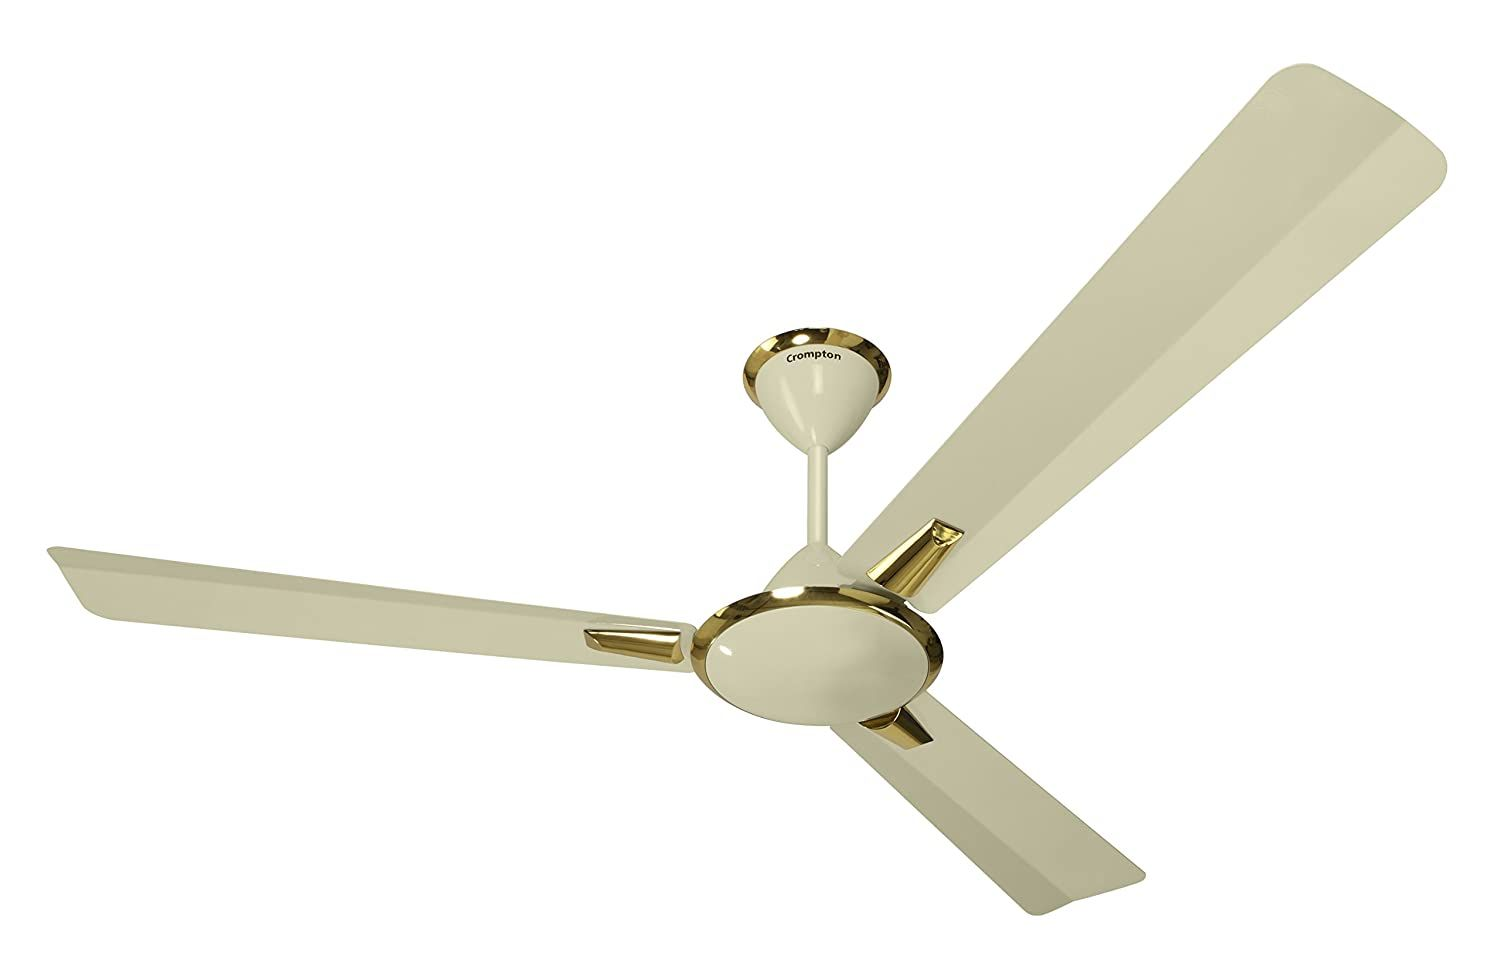 Crompton Aura 48-inch High Speed Decorative Ceiling Fan (Ivory)